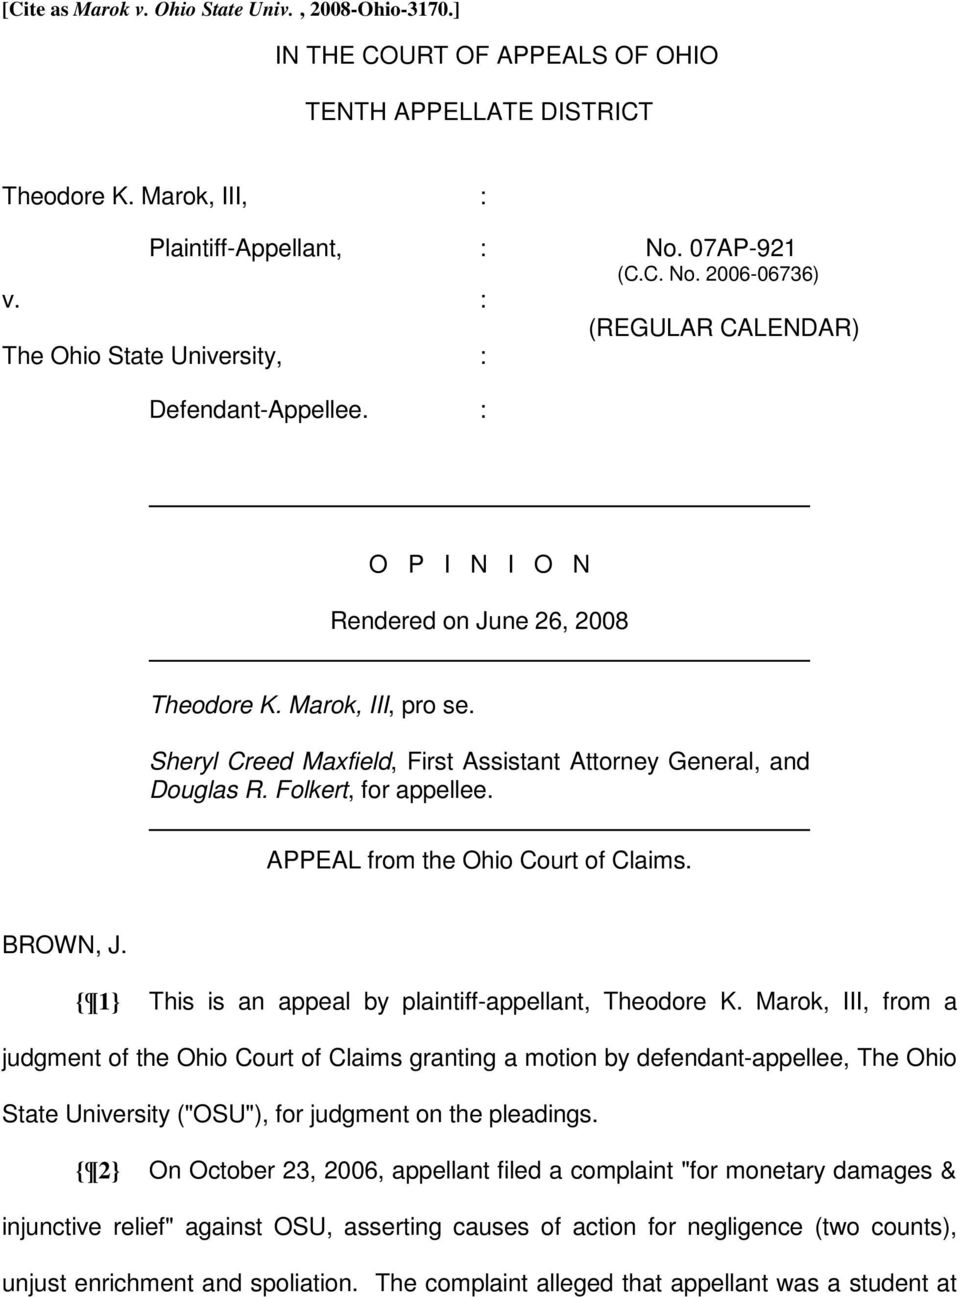 Sheryl Creed Maxfield, First Assistant Attorney General, and Douglas R. Folkert, for appellee. APPEAL from the Ohio Court of Claims. BROWN, J.